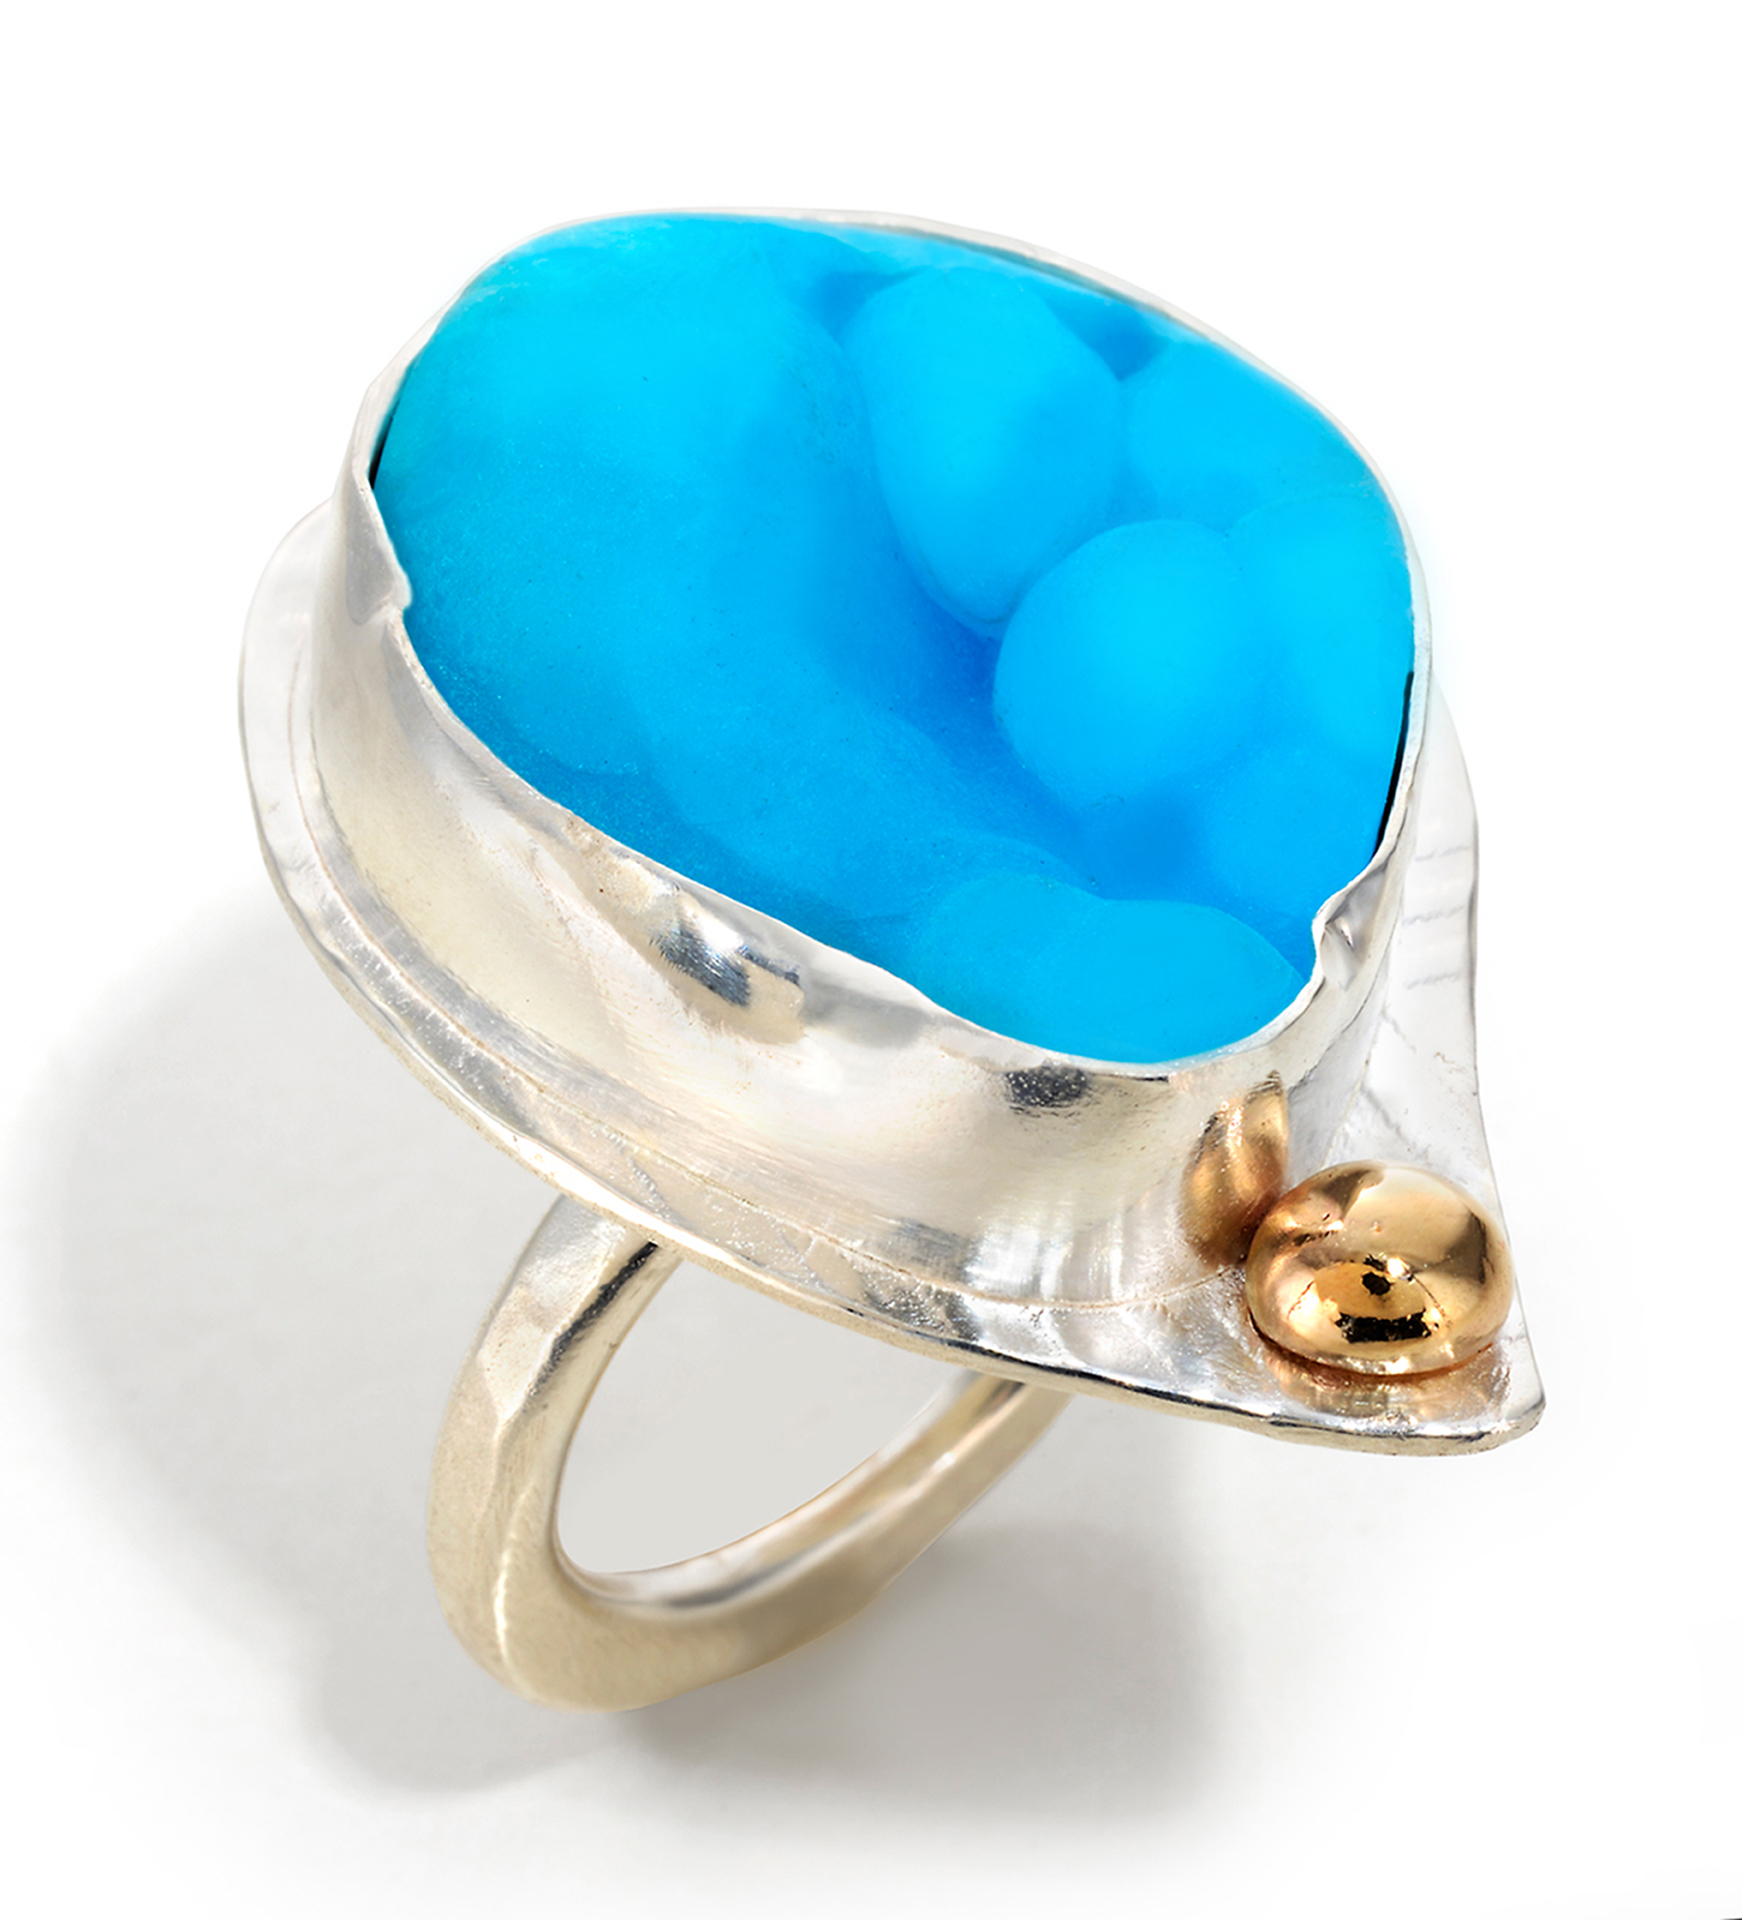 Hemimorphite RIng Jury Edited.jpg